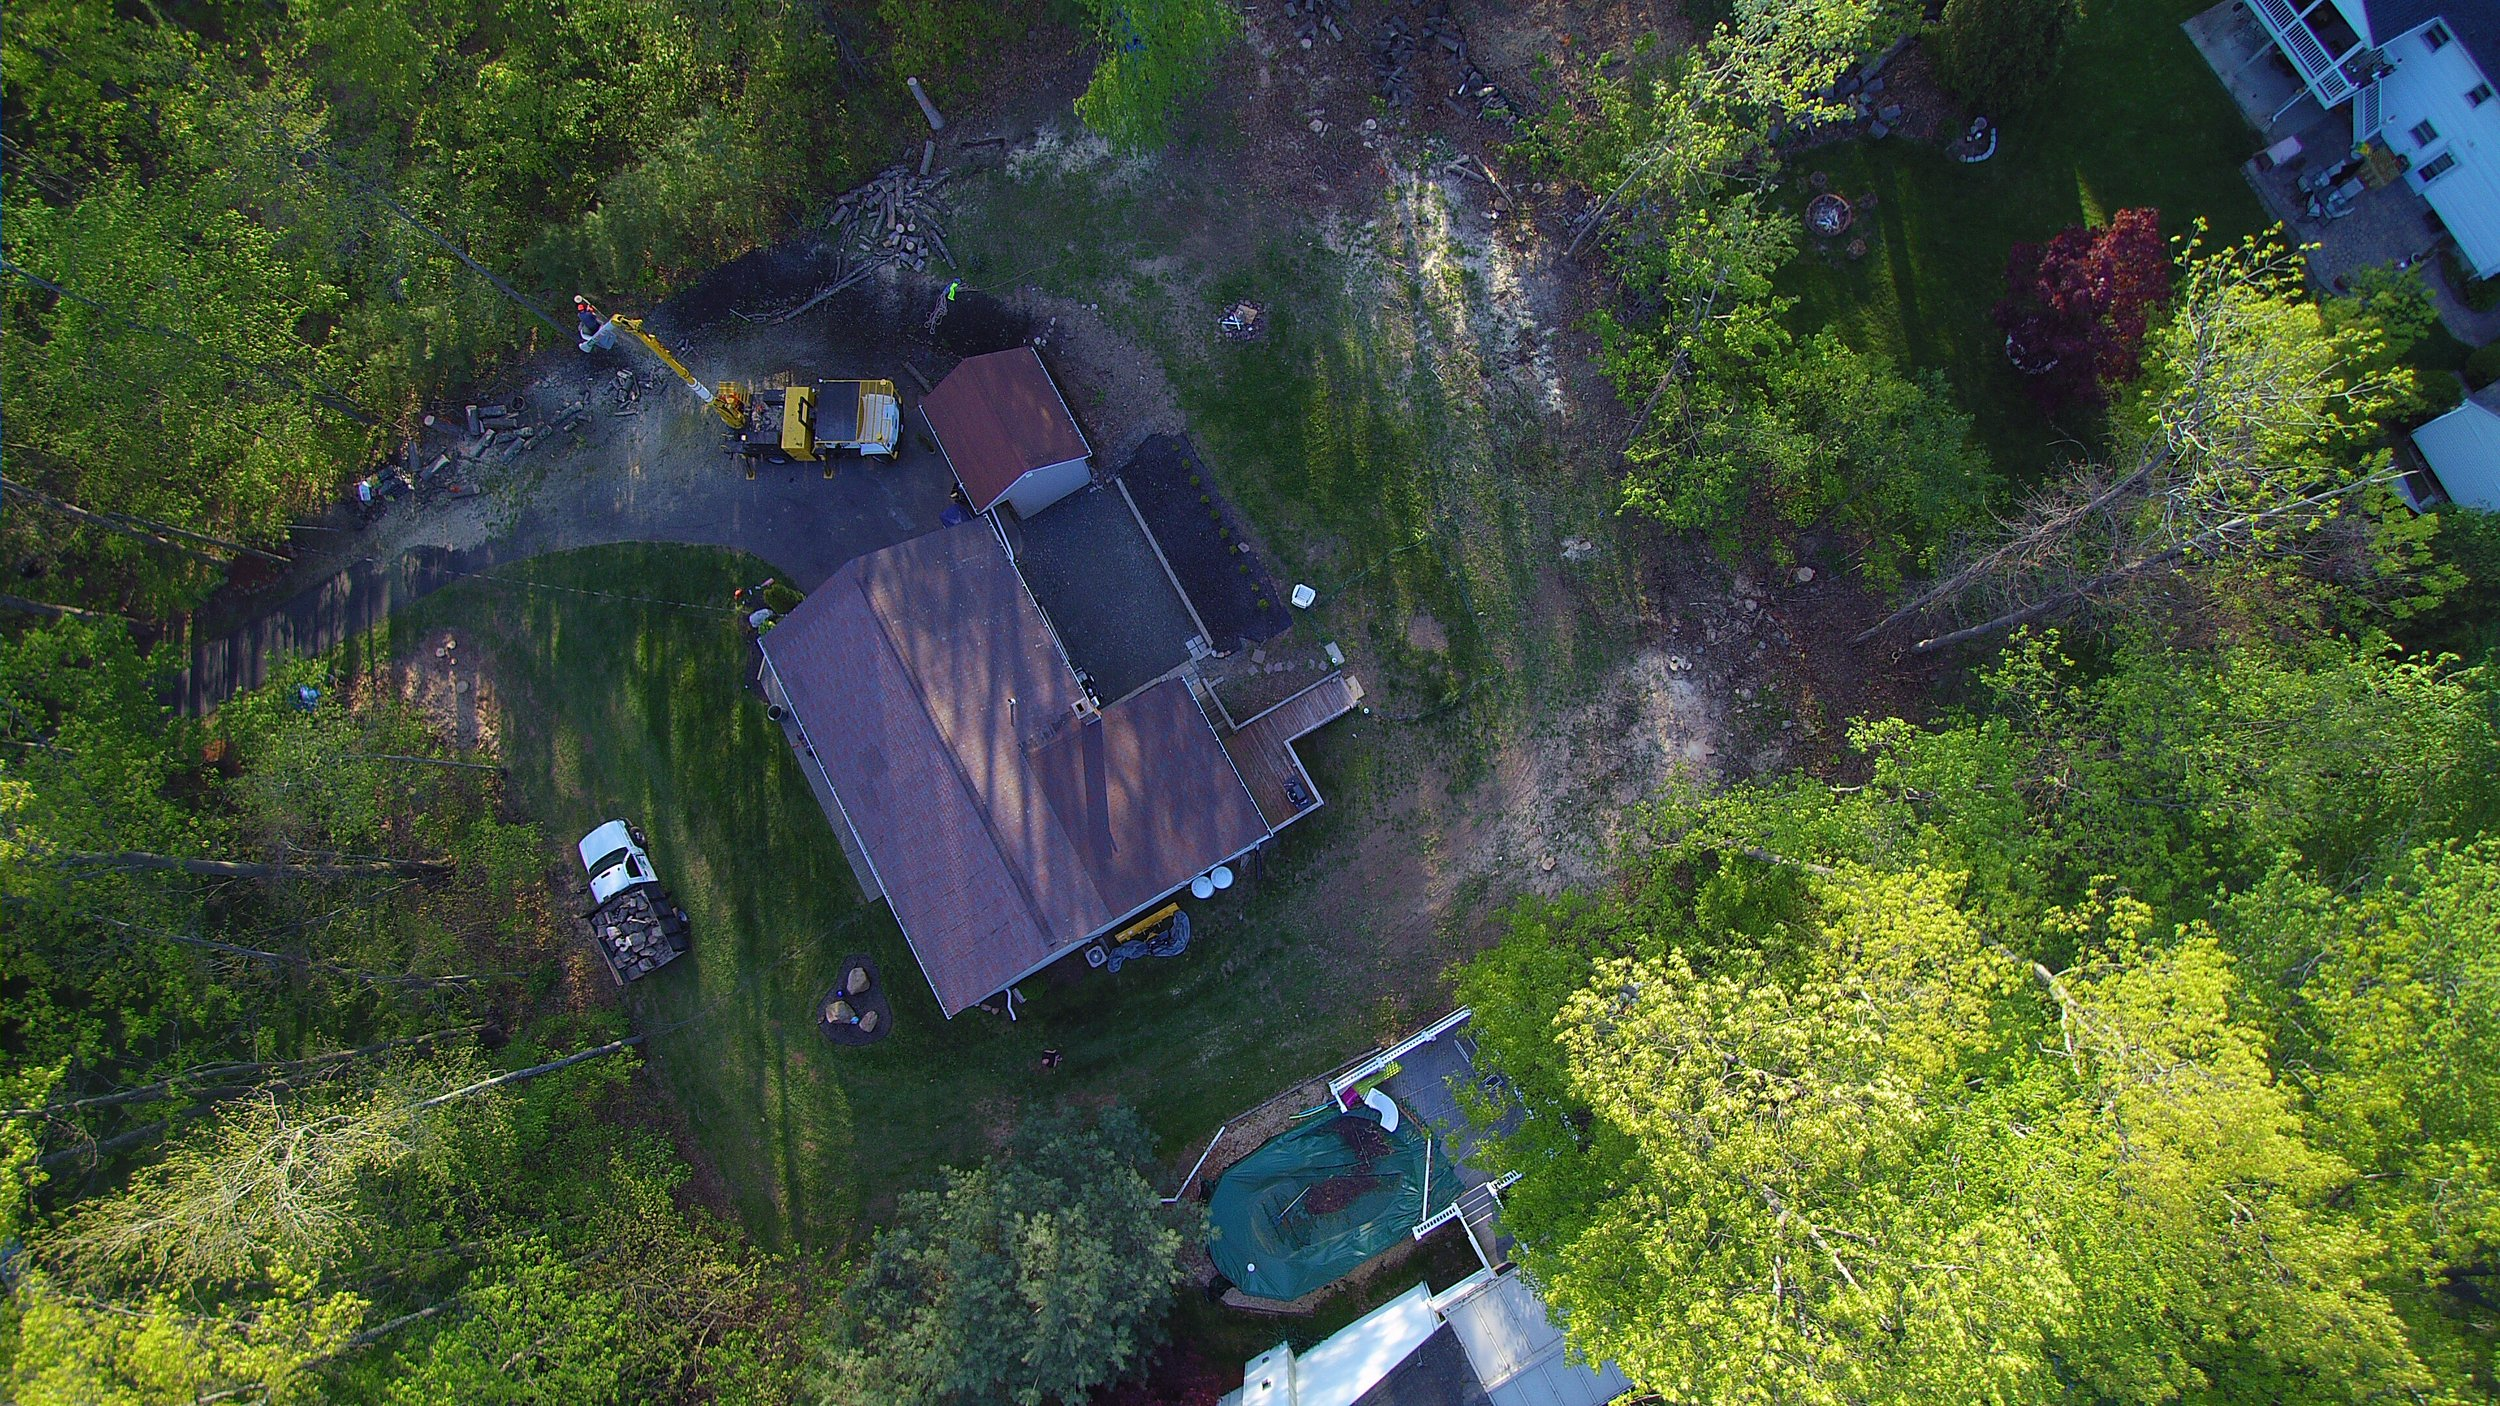 Skyworker bucket truck operation for a residential property